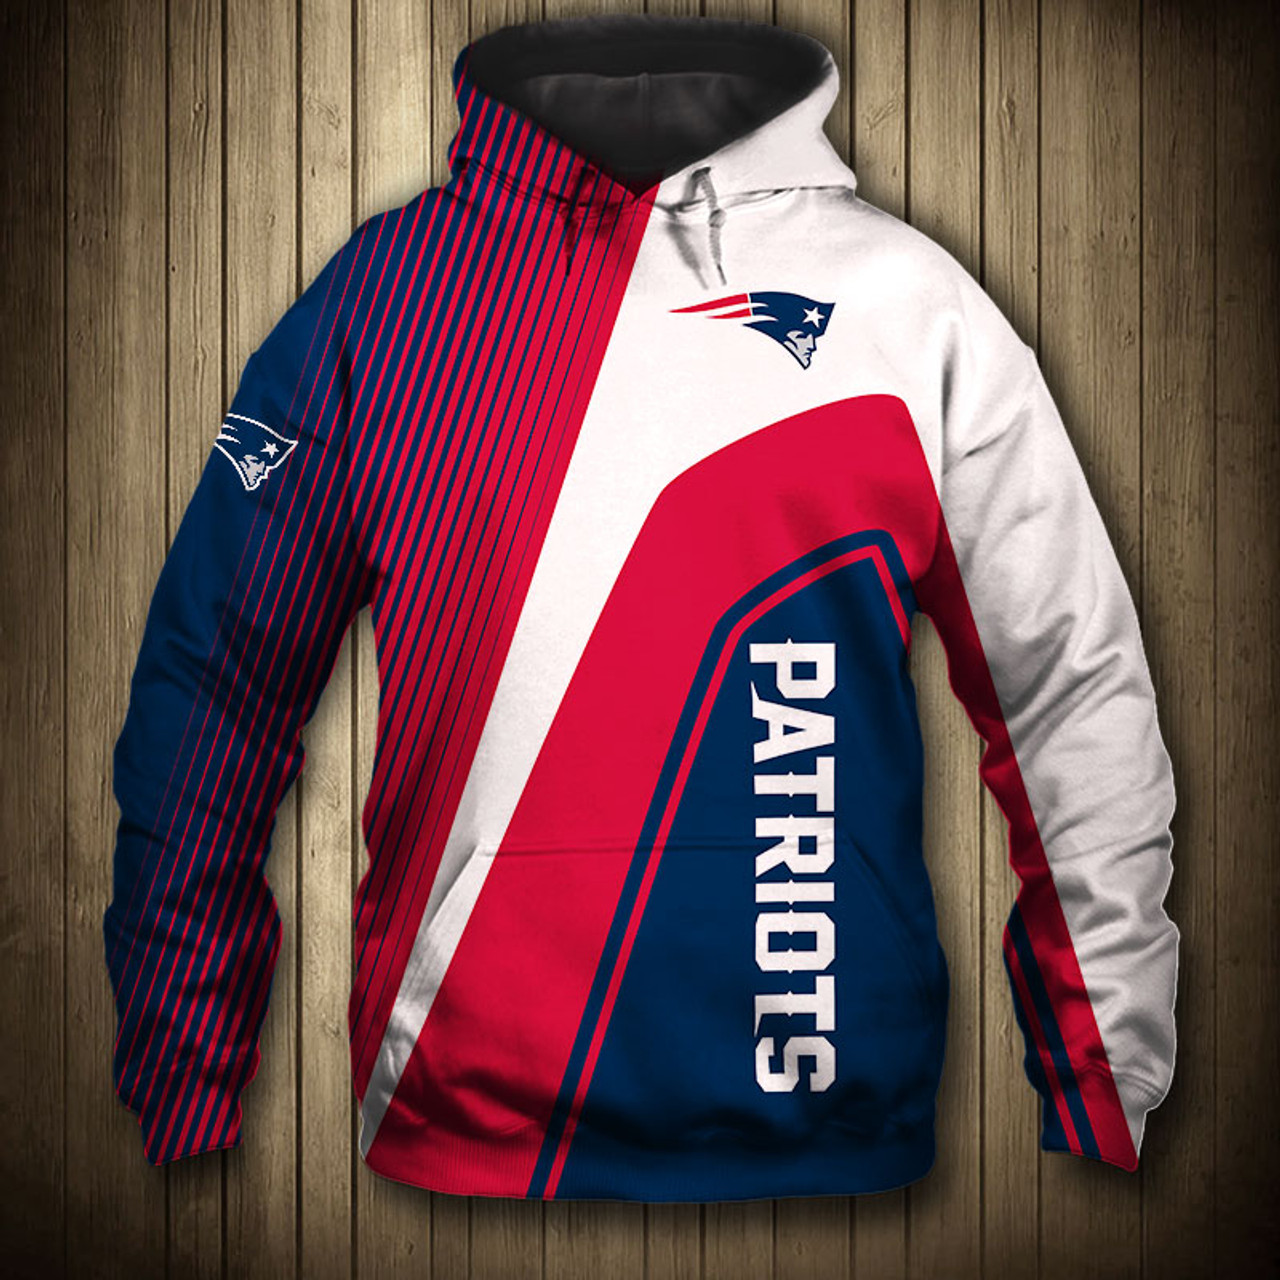 best service bd2c5 08222 **(OFFICIAL-N.F.L.NEW-ENGLAND-PATRIOTS-PULLOVER-HOODIES/3D-CUSTOM-PATRIOTS-LOGOS  & OFFICIAL-PATRIOTS-TEAM-COLORS/NICE-3D-DETAILED-GRAPHIC-PRINTED-DOUB...